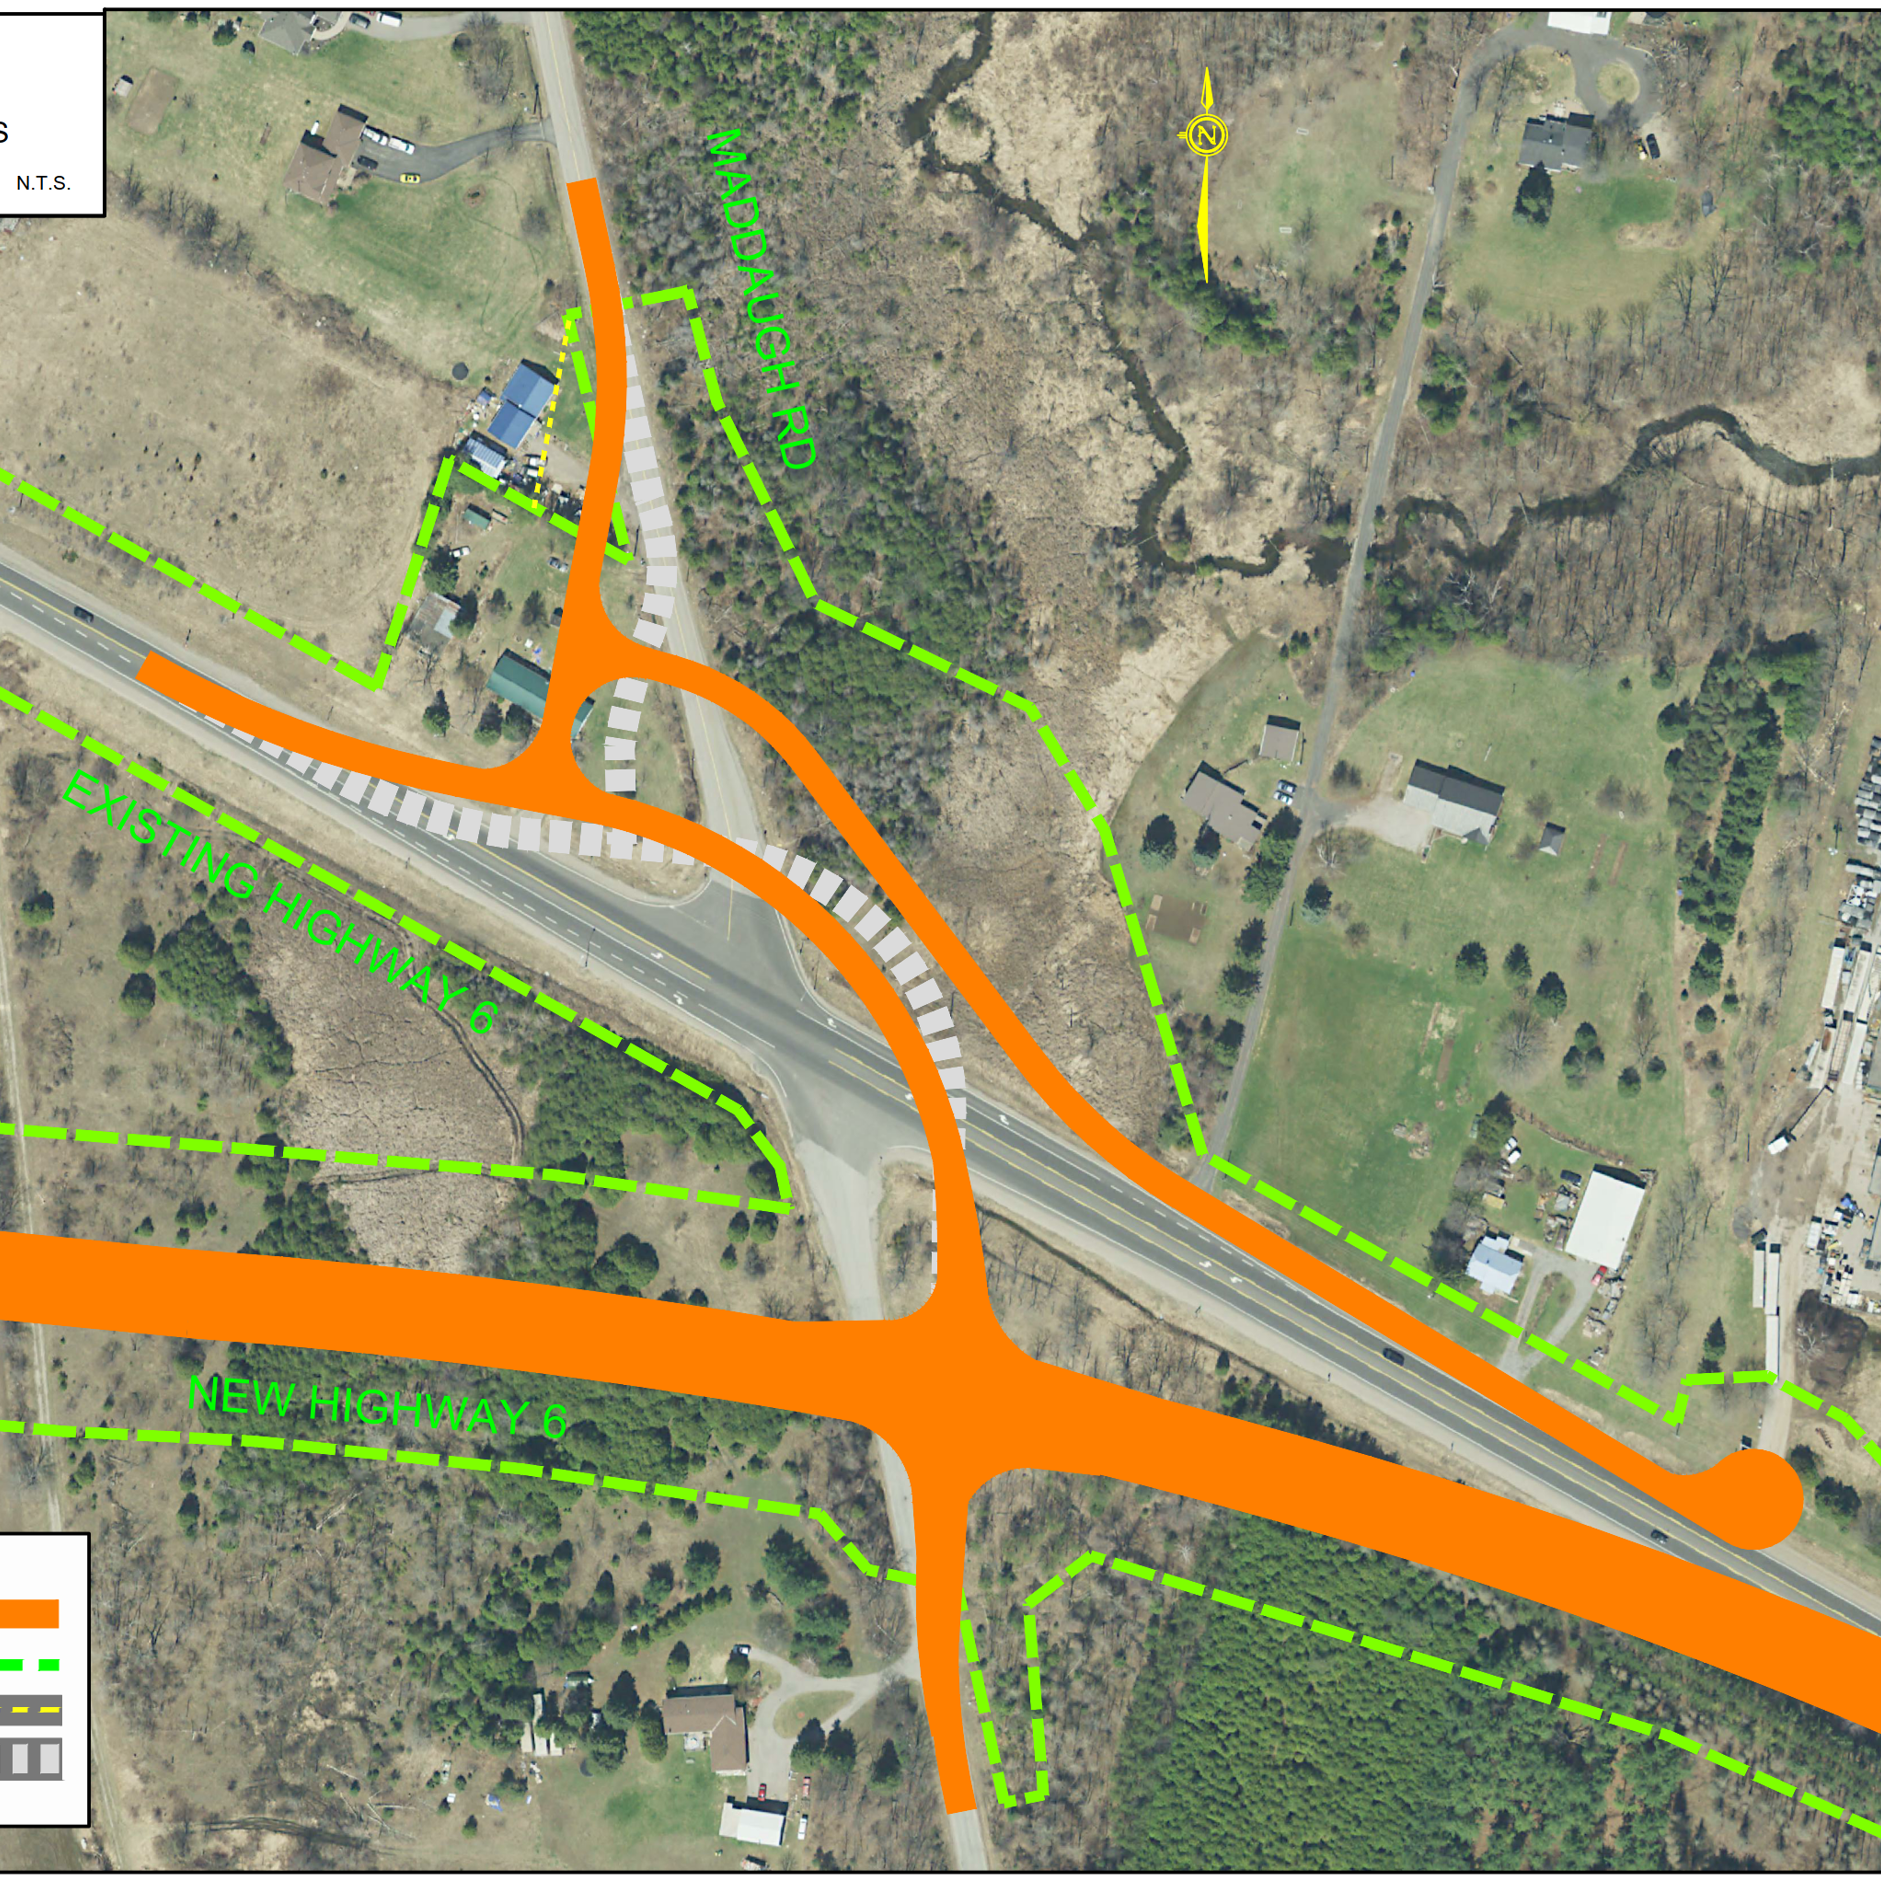 Aerial map displaying the refined design concept for Proposed Highway 6 and Maddaugh Road which shifts the intersection further to the northeast compared to the approved EA configuration.